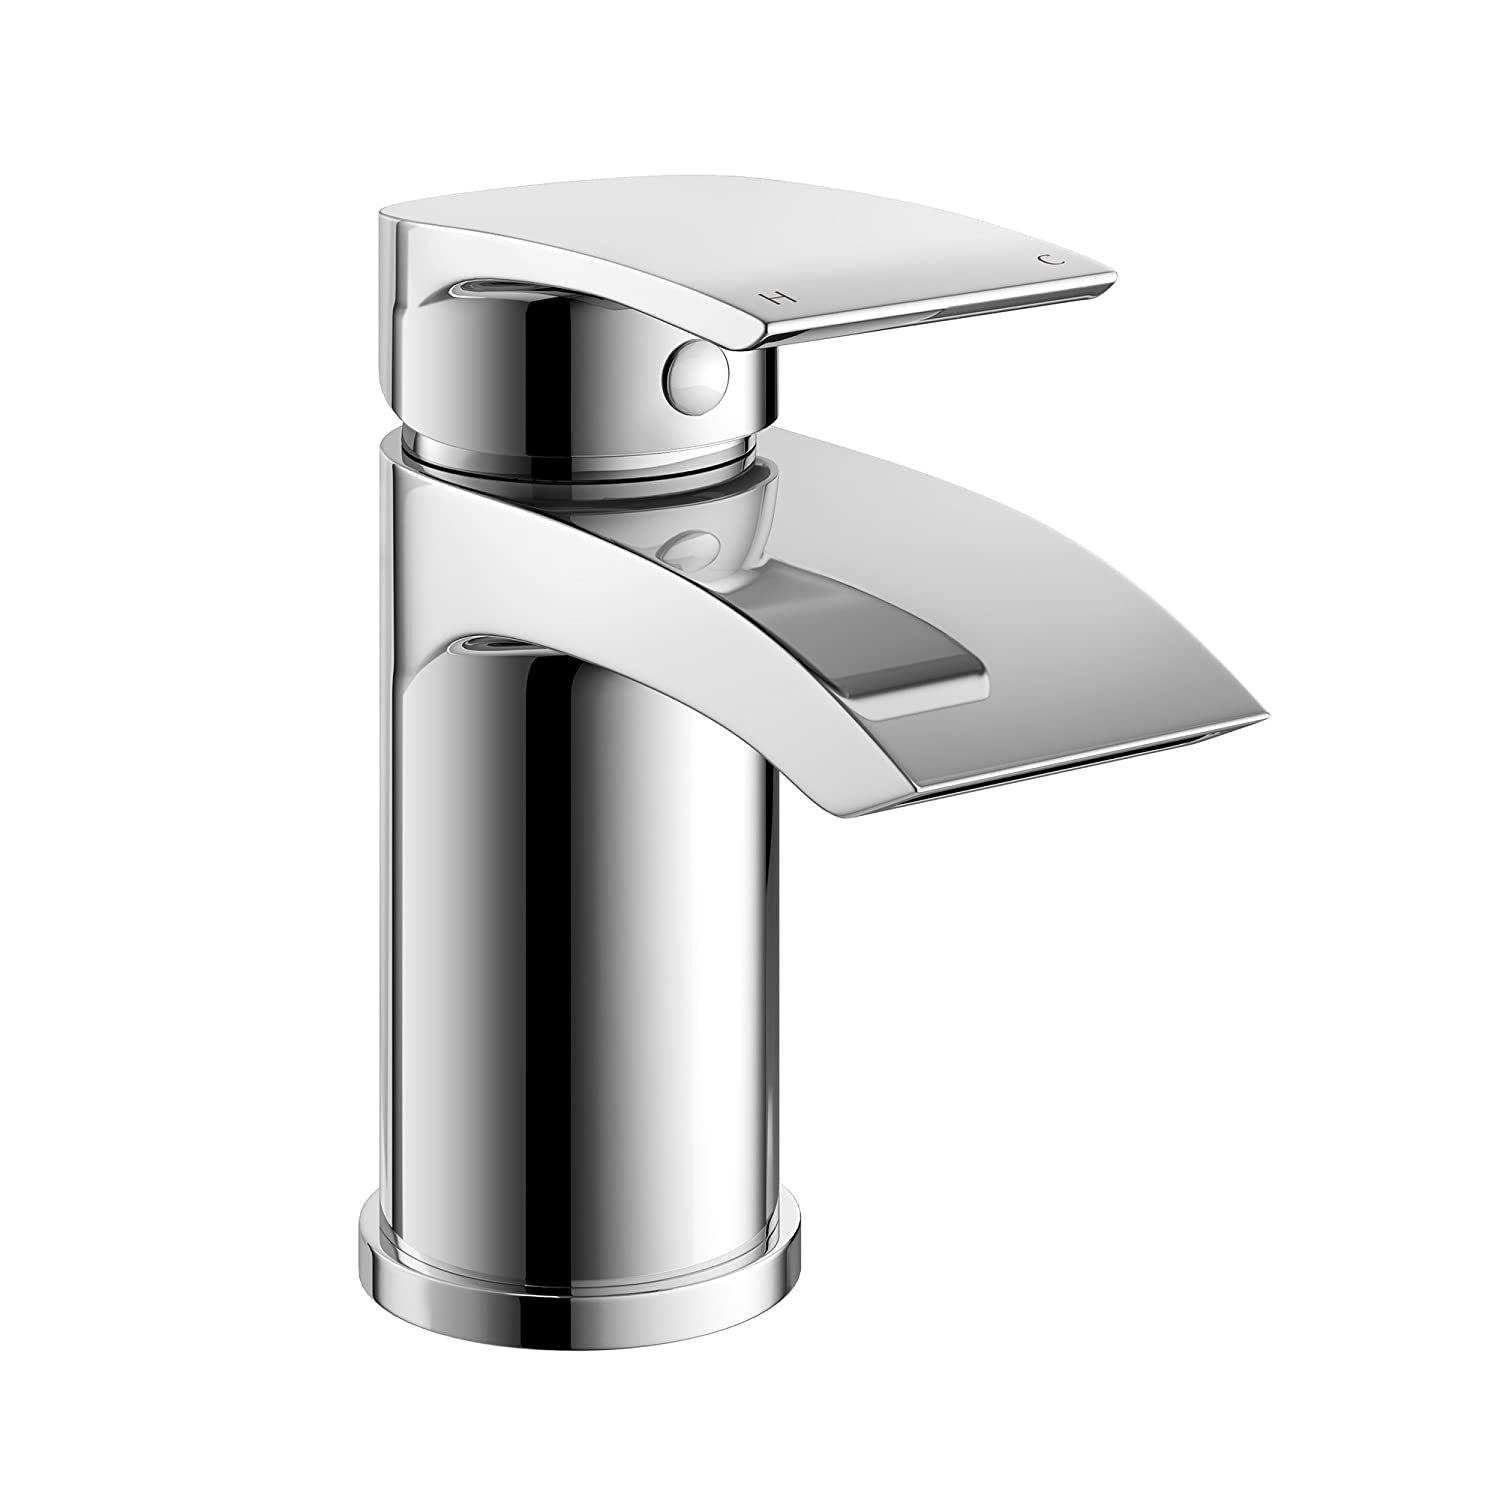 Bathroom Sink Taps | Amazon.co.uk